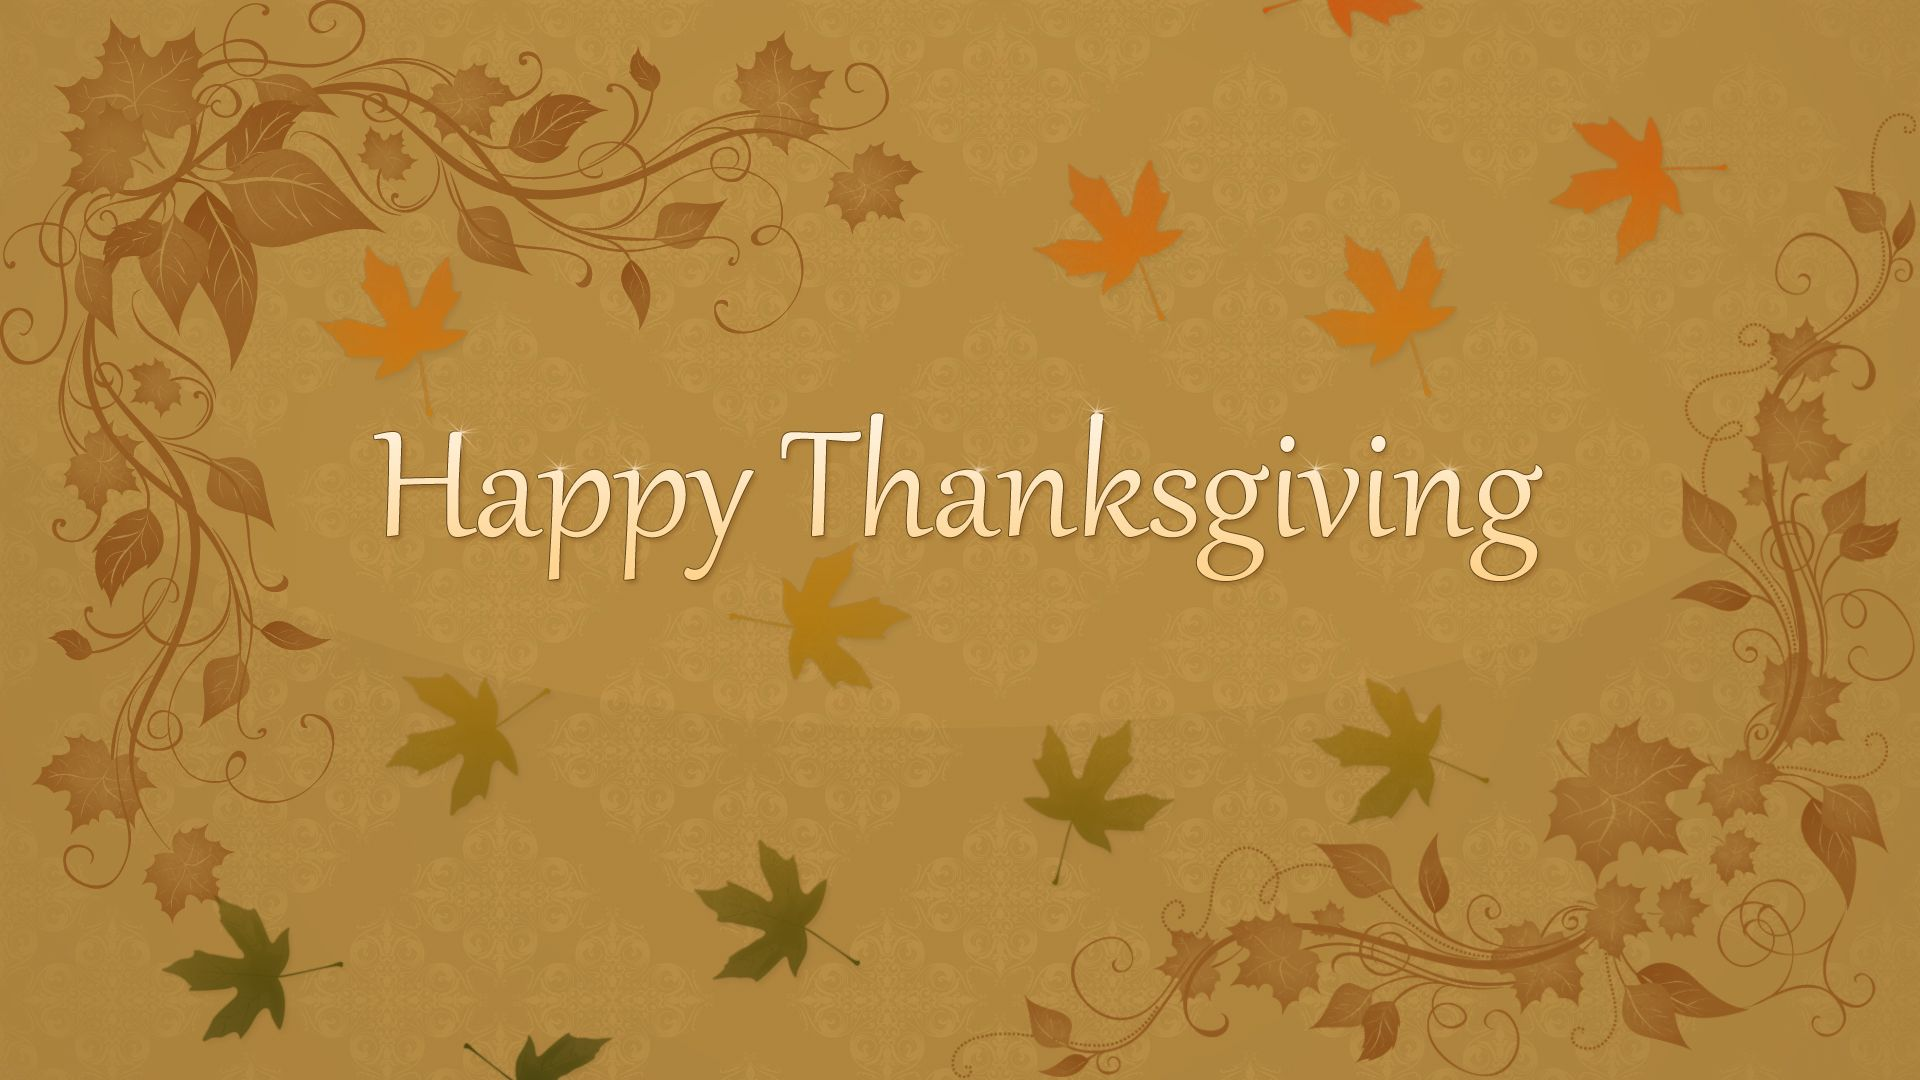 Holiday Thanksgiving Wallpaper Happy Thanksgiving Wallpaper Thanksgiving Wallpaper Happy Thanksgiving Day